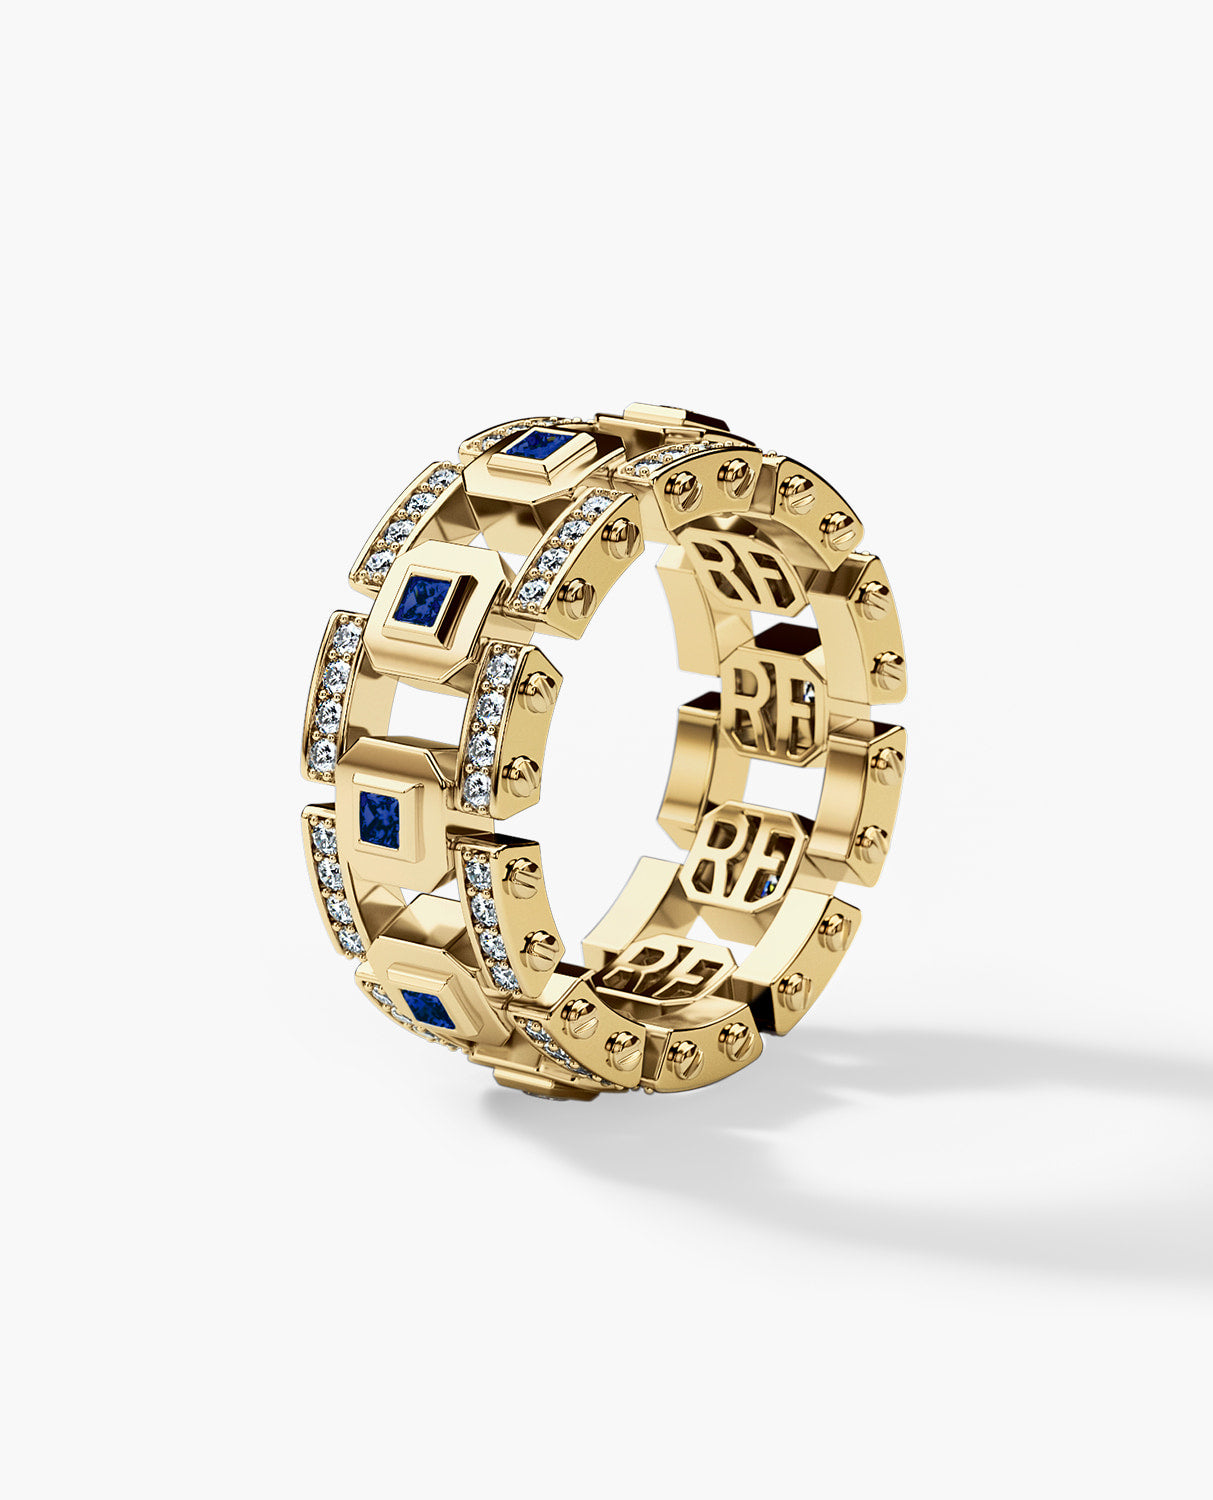 LA PAZ Mens Gold Wedding Band with Sapphires